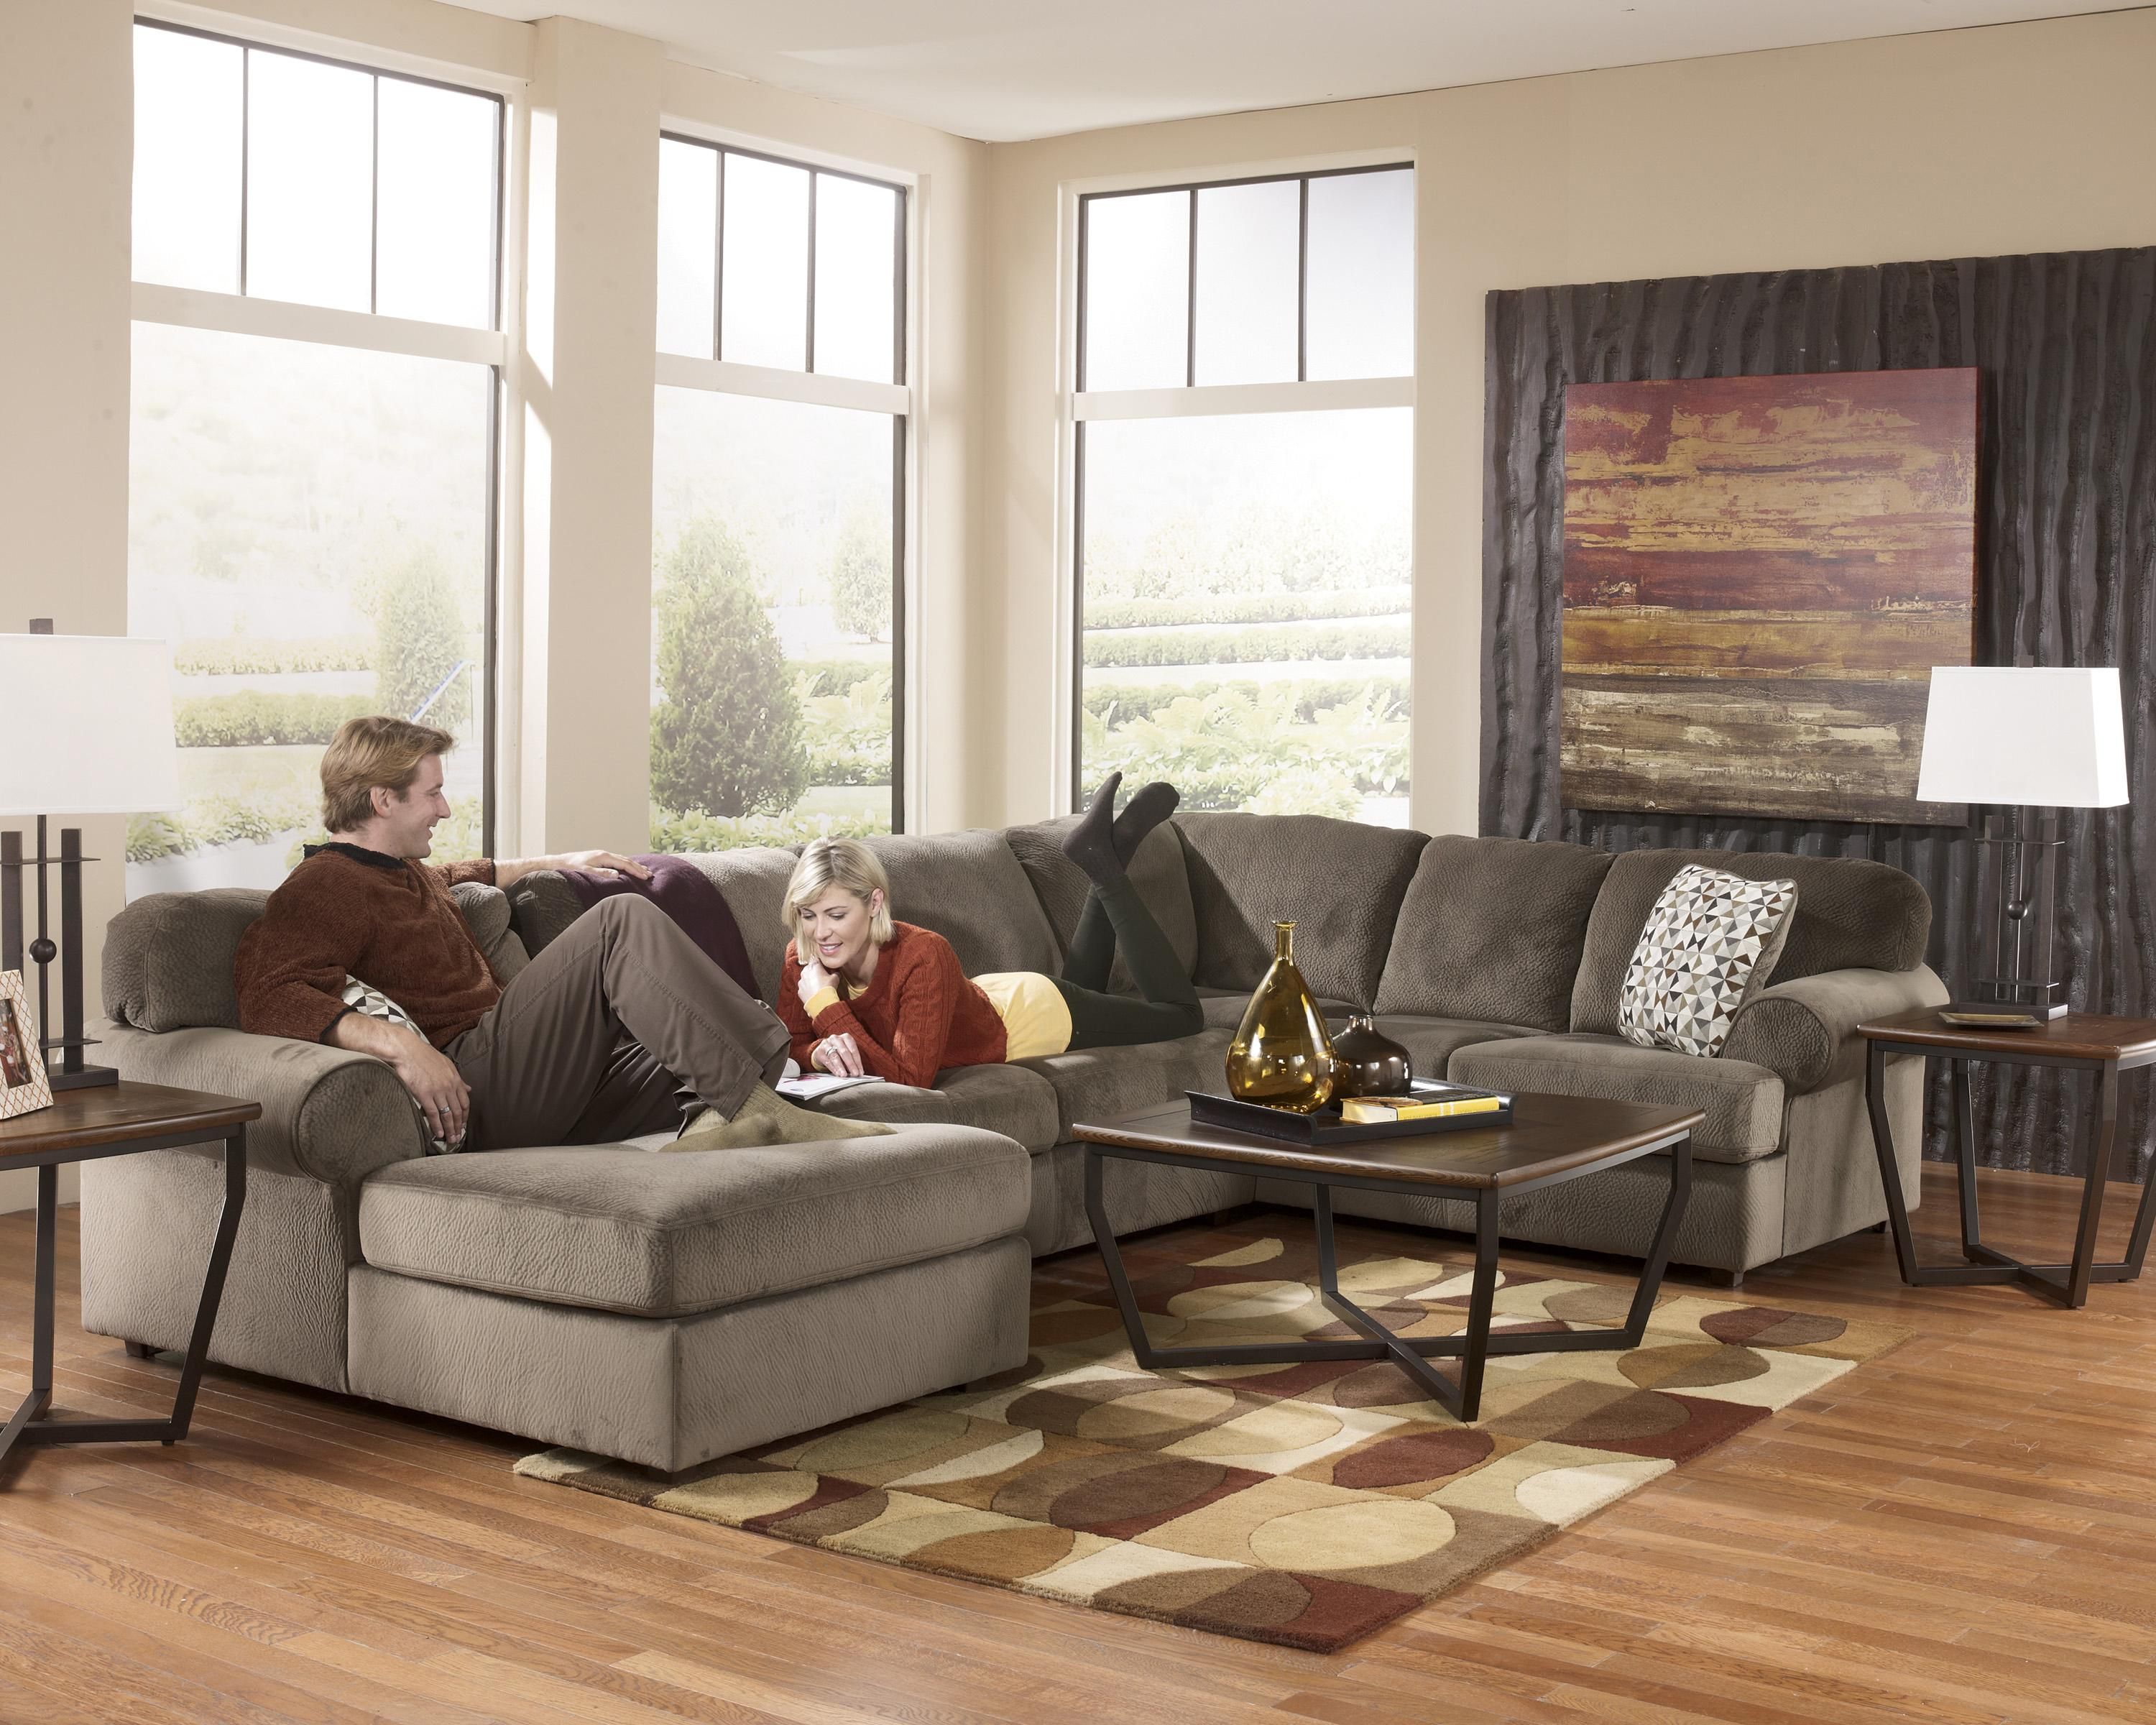 Ashley Signature Design Jessa Place - Dune Casual Sectional Sofa with Right Chaise - Rooms and Rest - Sofa Sectional : jessa place sectional dune - Sectionals, Sofas & Couches